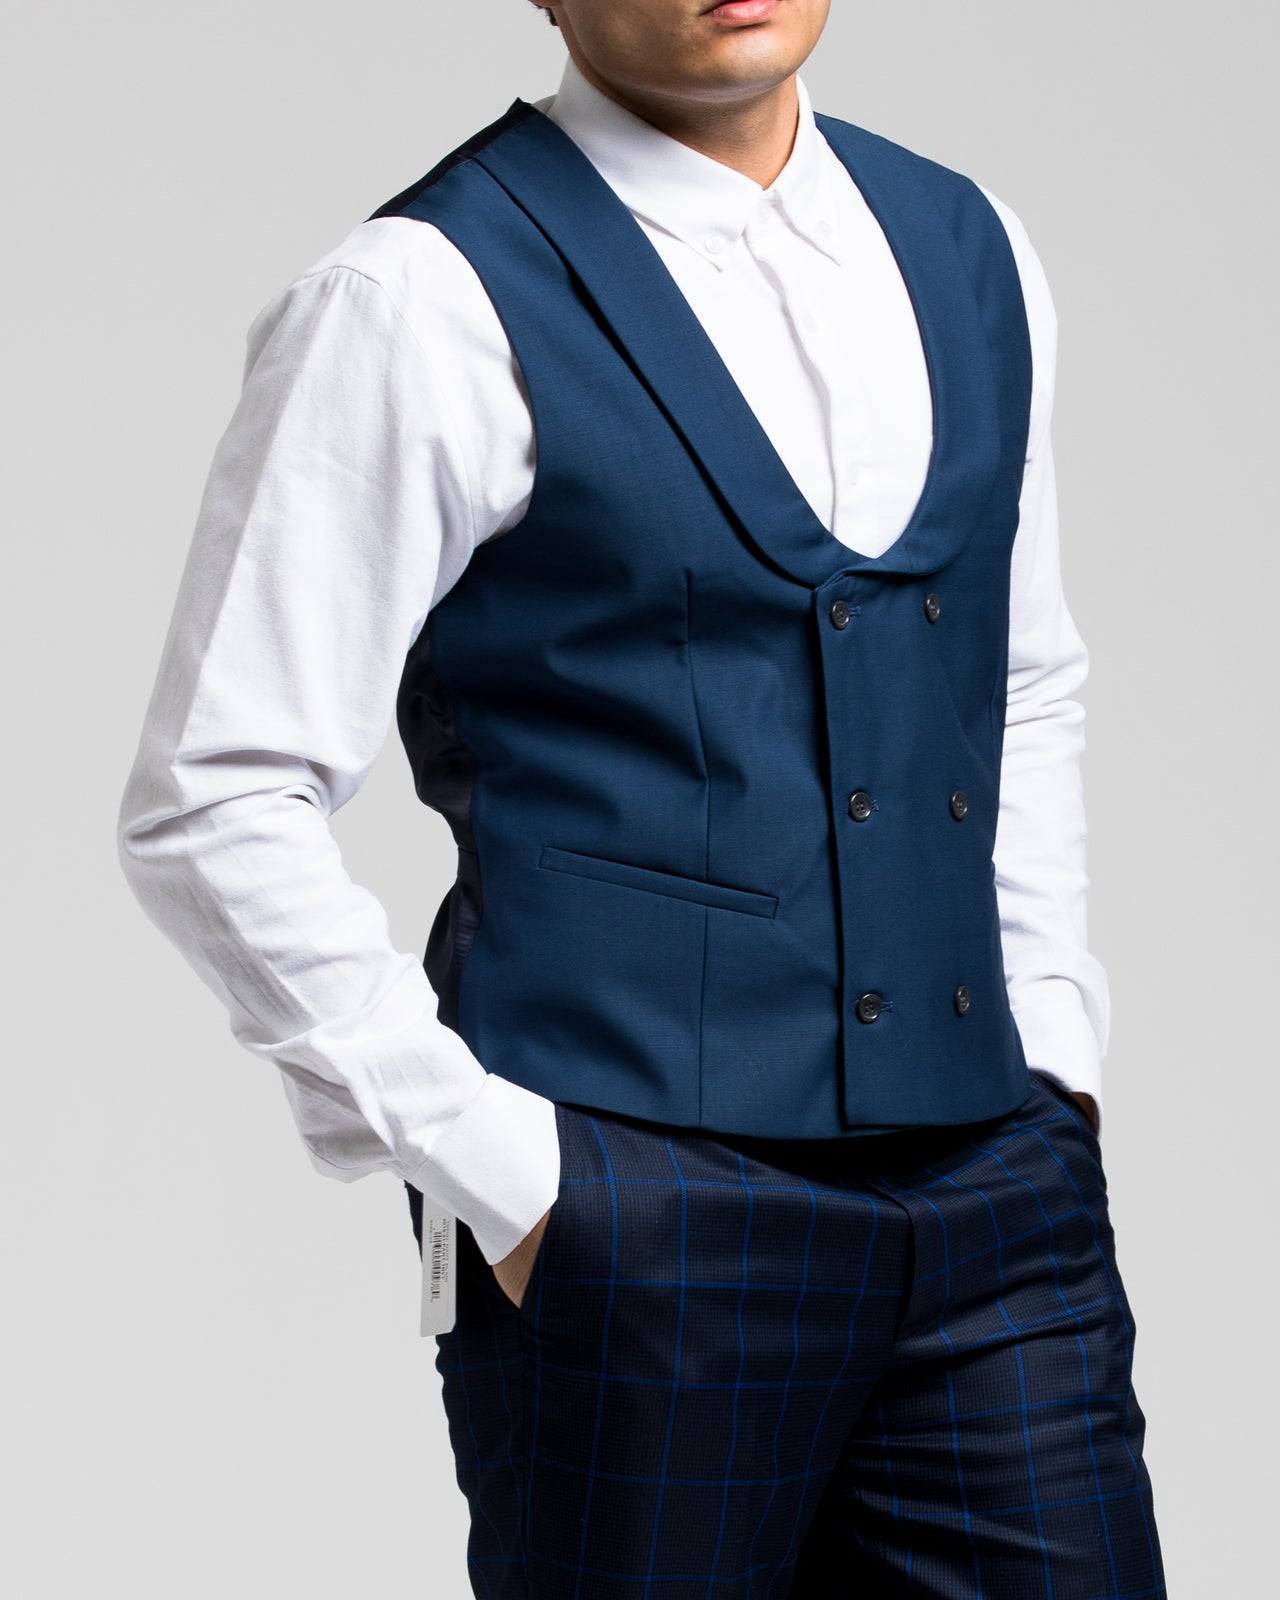 Dorsia Suit Vest - Color: Tonal Navy Plaid | Blue